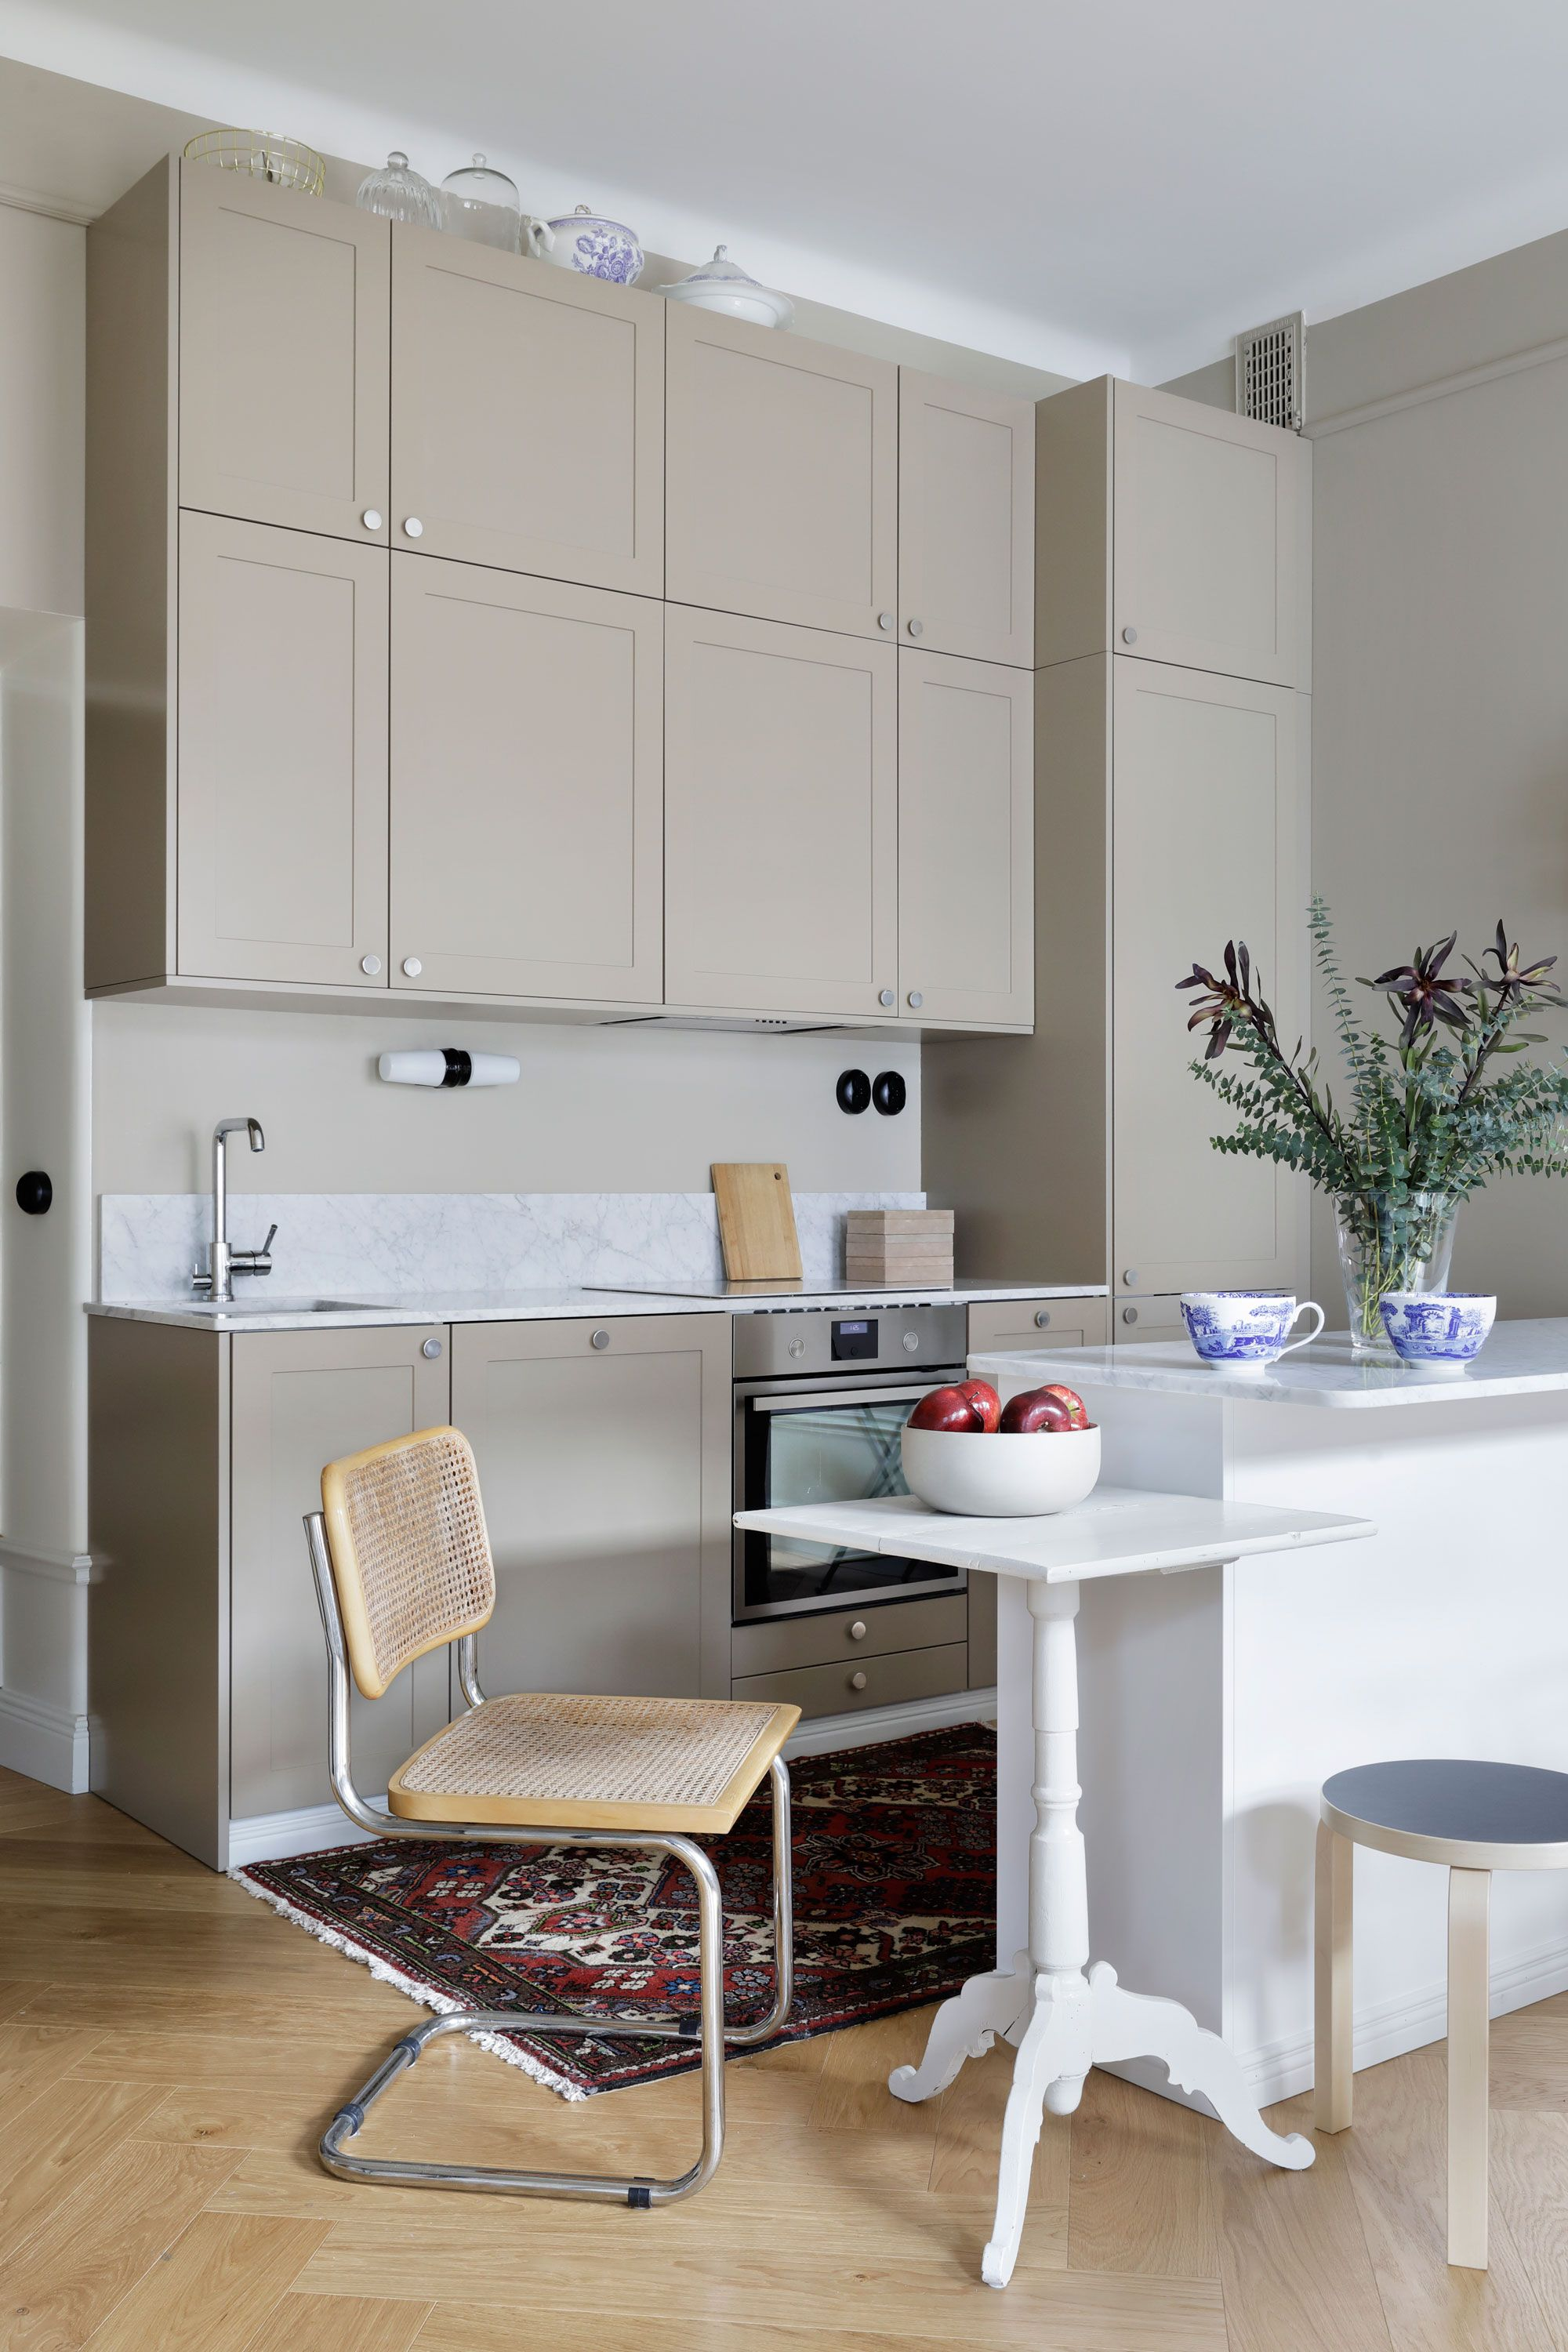 Awesome Classic, Yet Contemporary Looks. Warm And Harmonious Colour Scheme With  Vintage Furniture. A.S.Helsingö ENSIÖ Kitchen With IKEA Cabinet Frames.